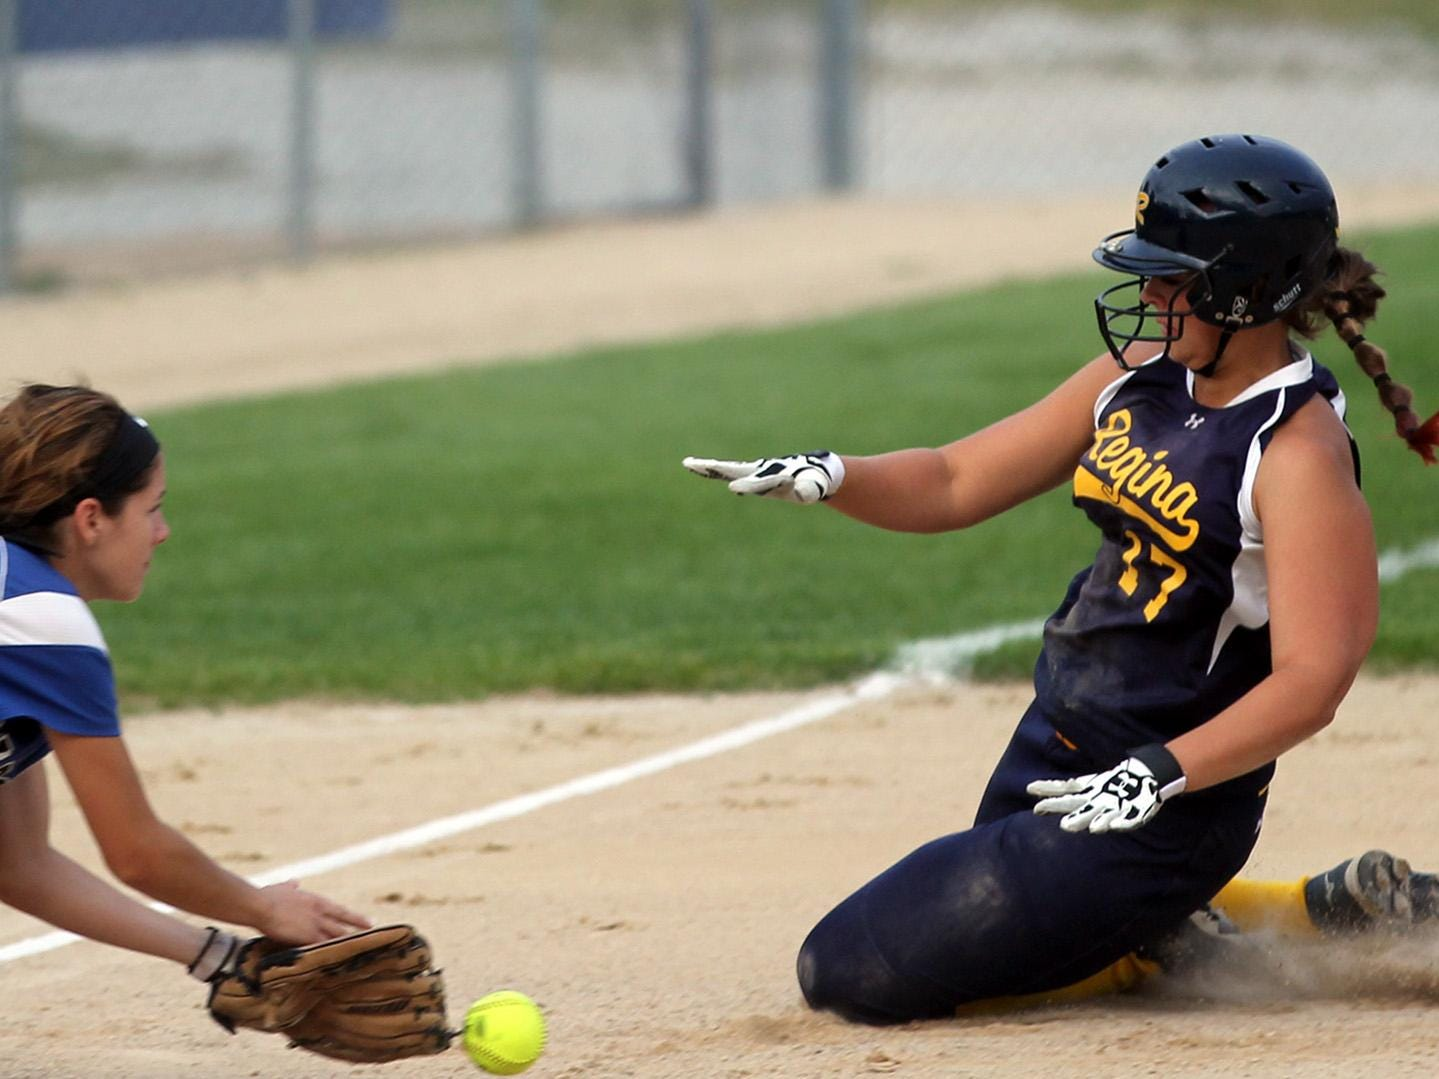 Regina's Hannah Stein safely slides to third base during the Regals' game against Columbus on Wednesday, July 8, 2015. David Scrivner / Iowa City Press-Citizen